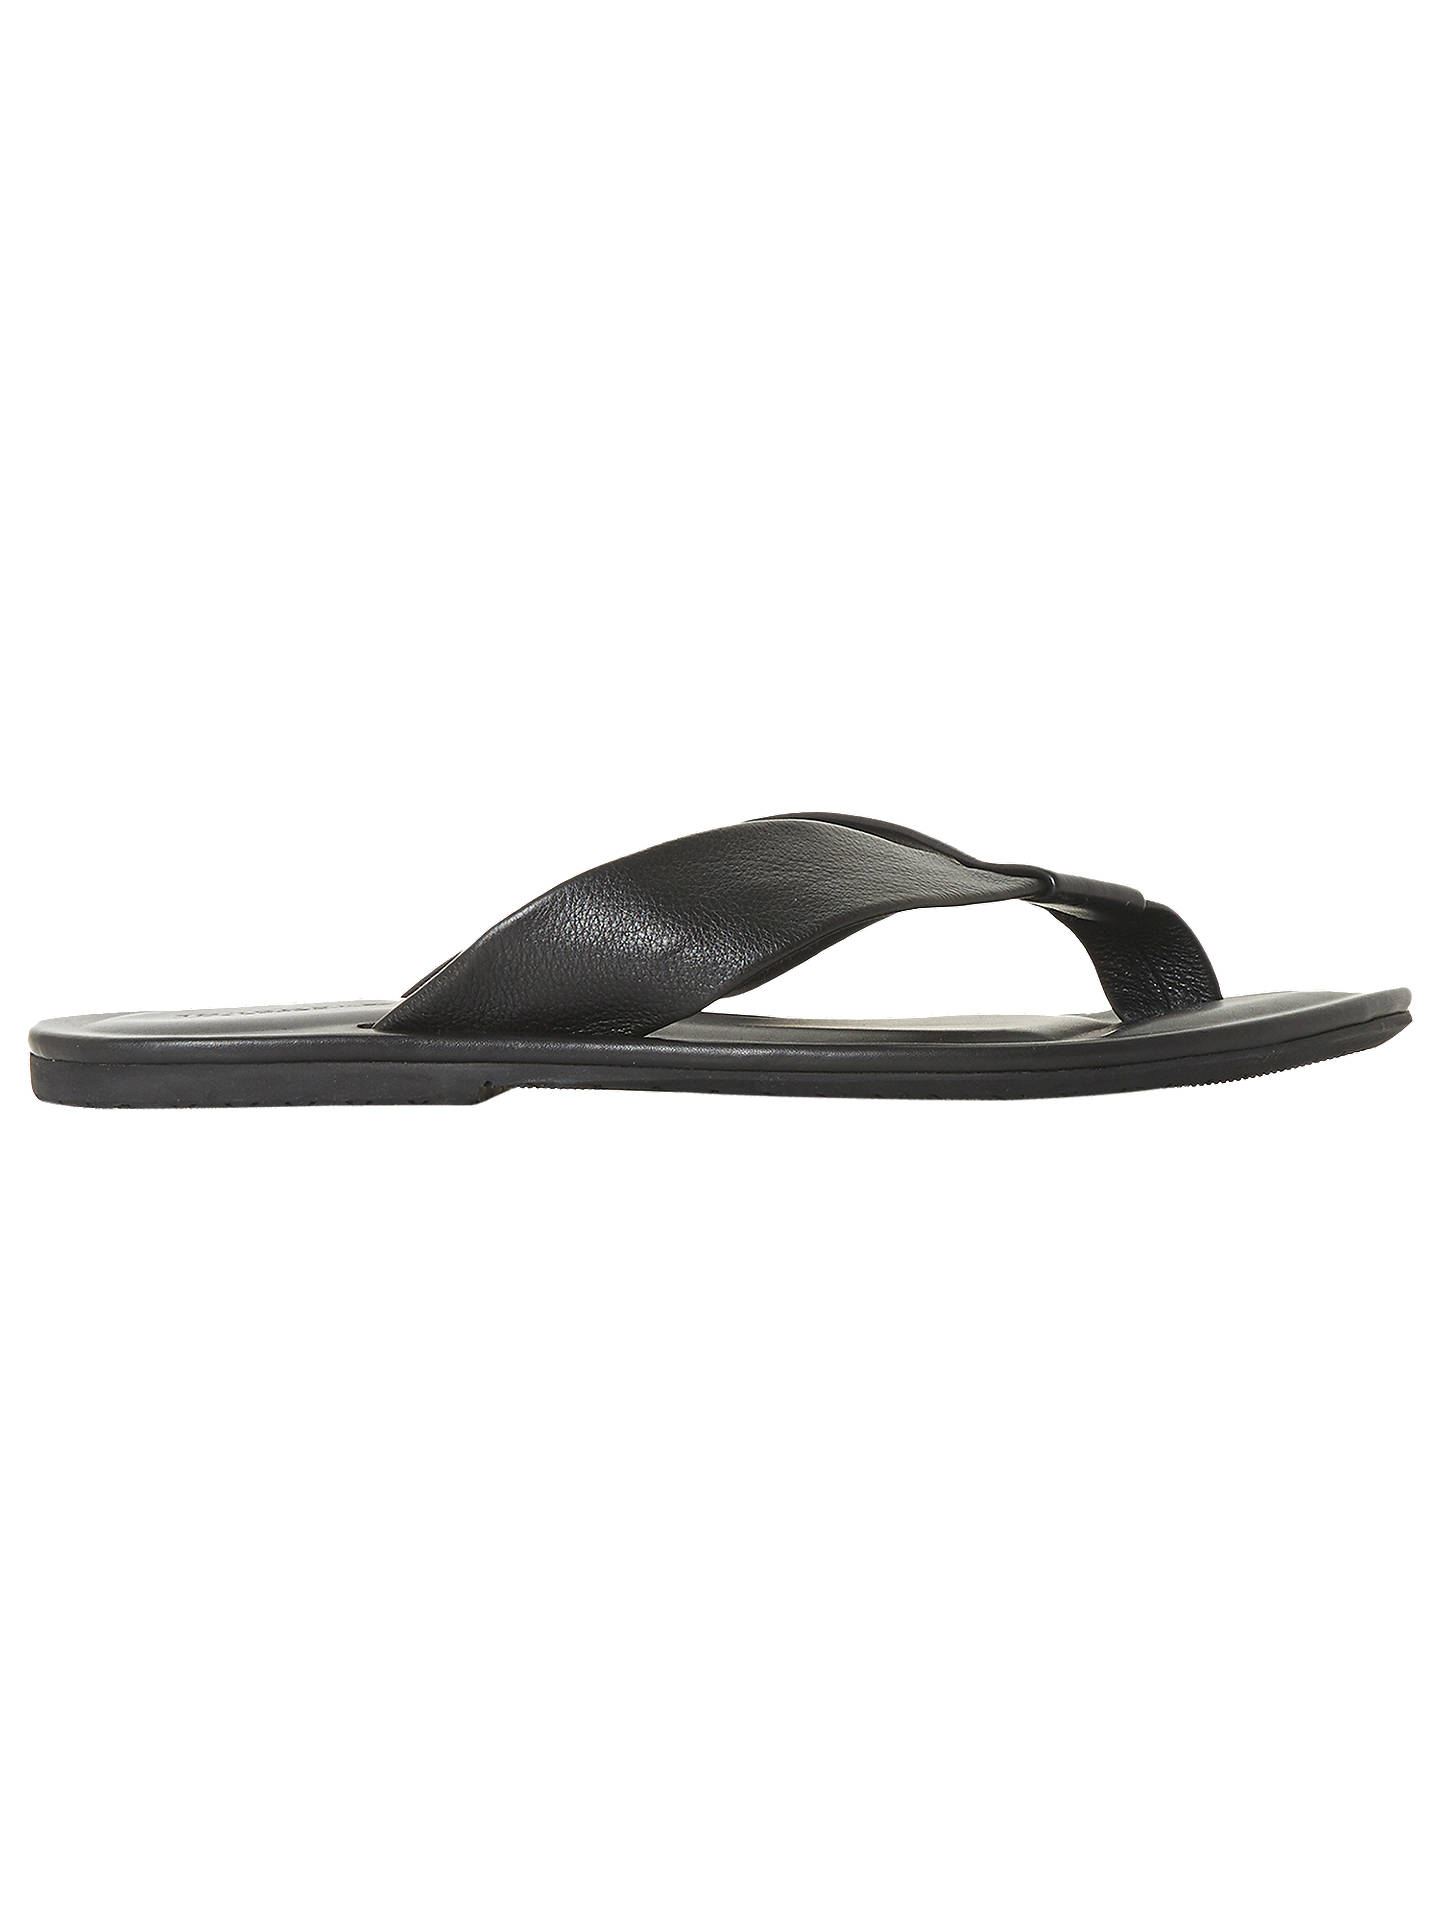 e6971d2a71c3 Buy Dune Idle Toe Post Sandals